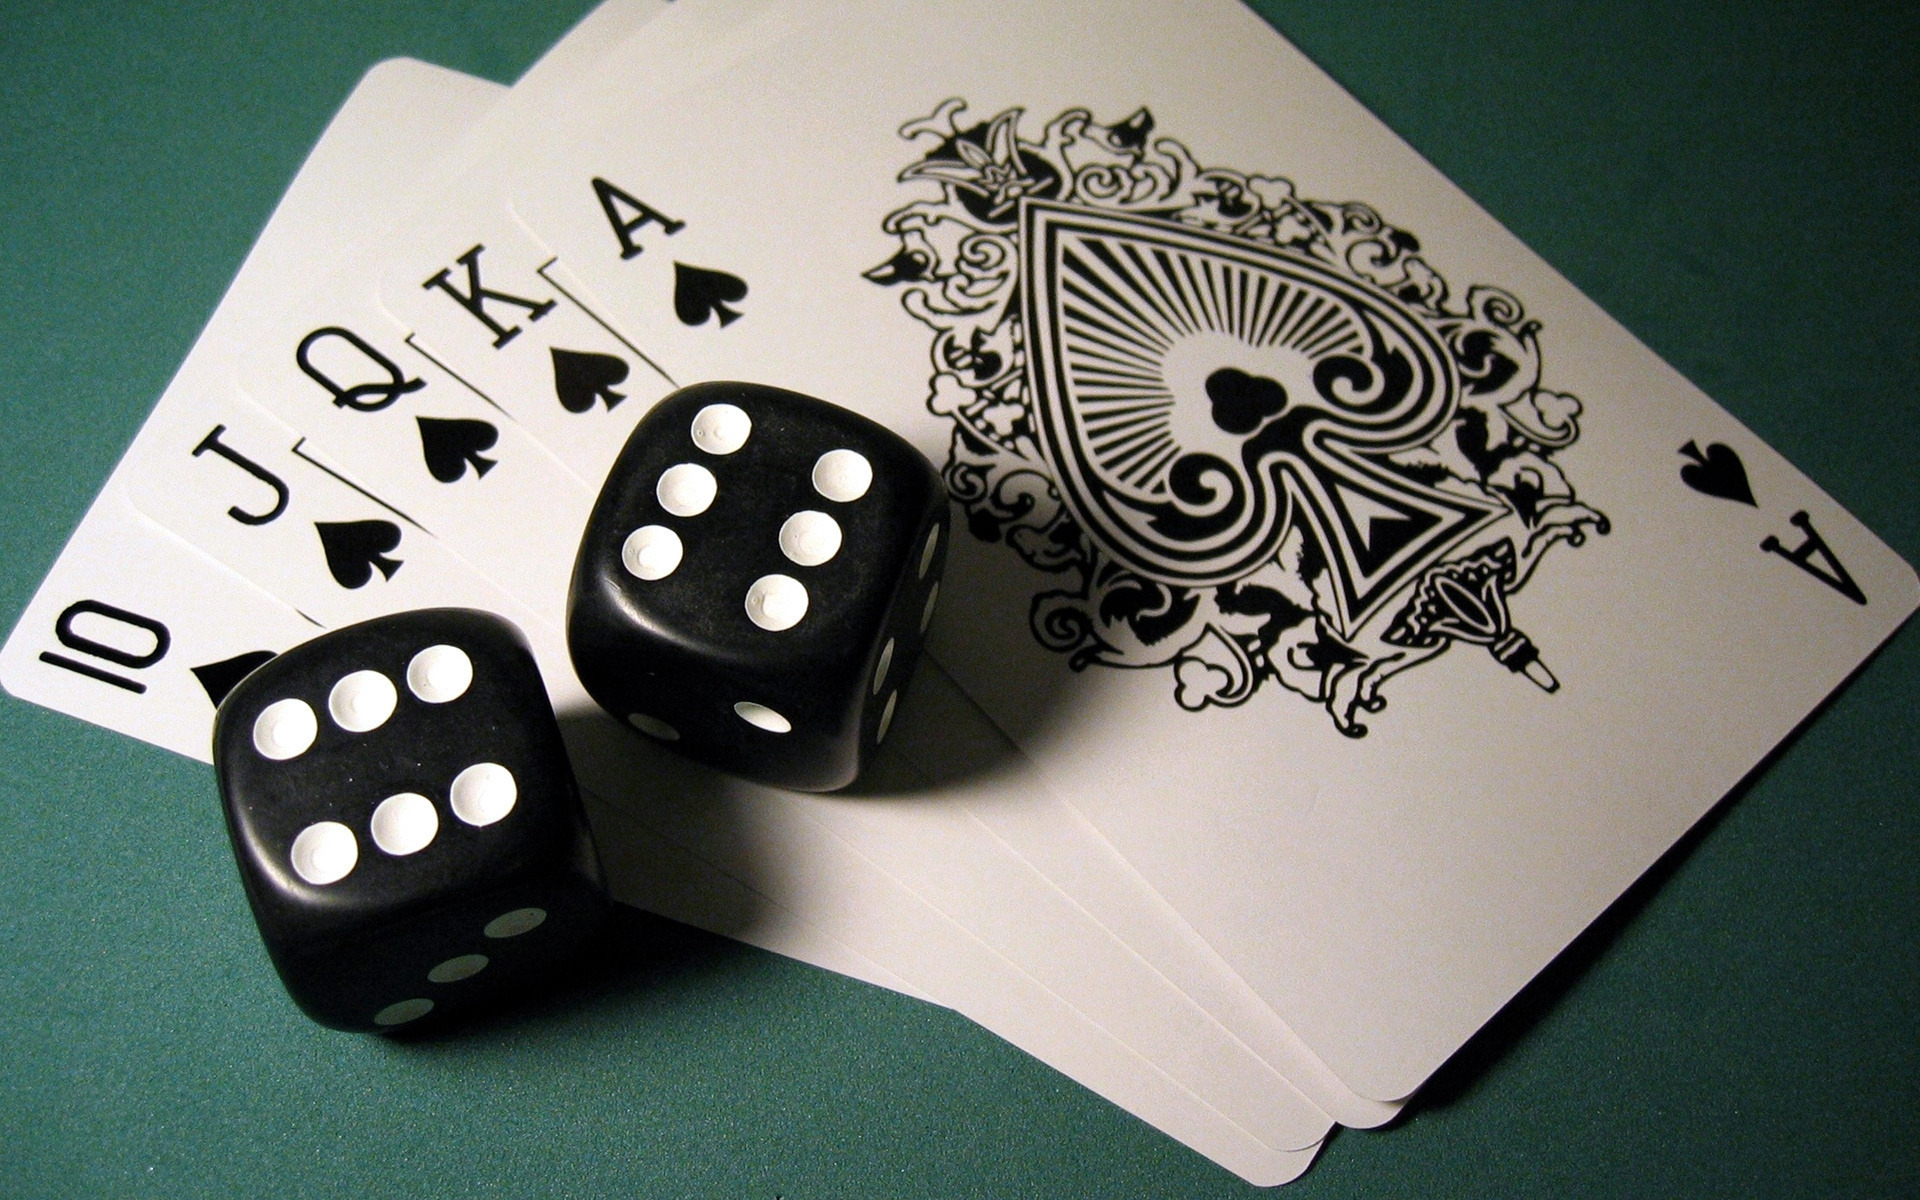 The Good Online Casino BS Concept